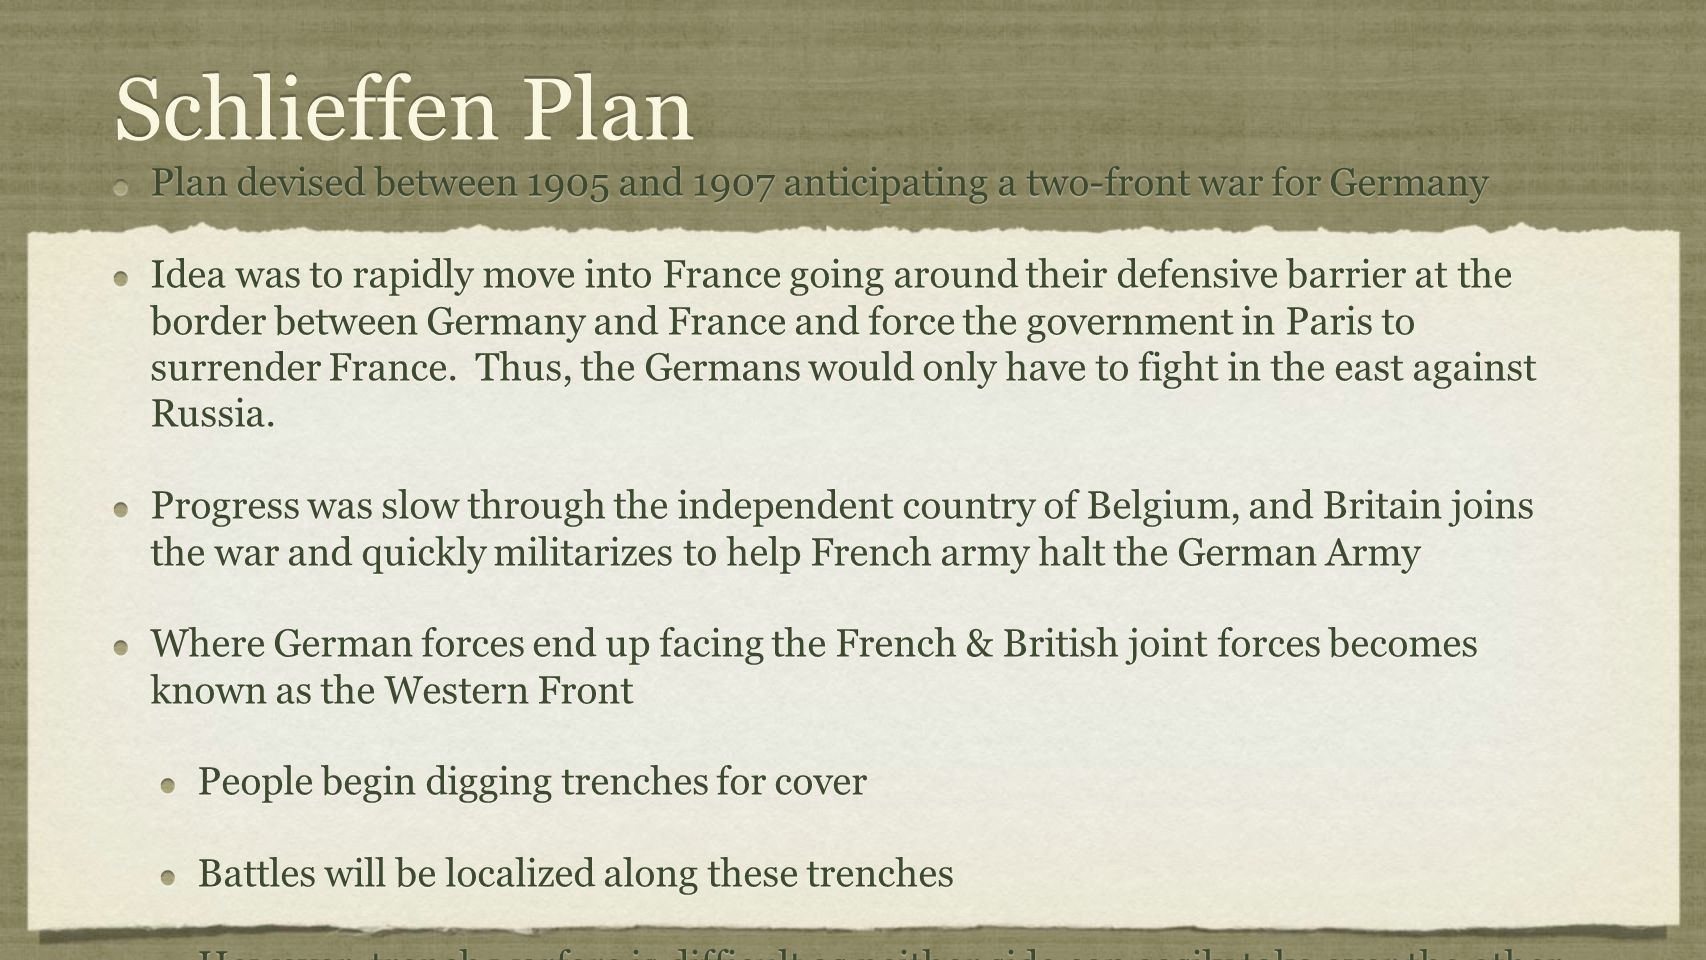 Schlieffen Plan Plan devised between 1905 and 1907 anticipating a two-front war for Germany.